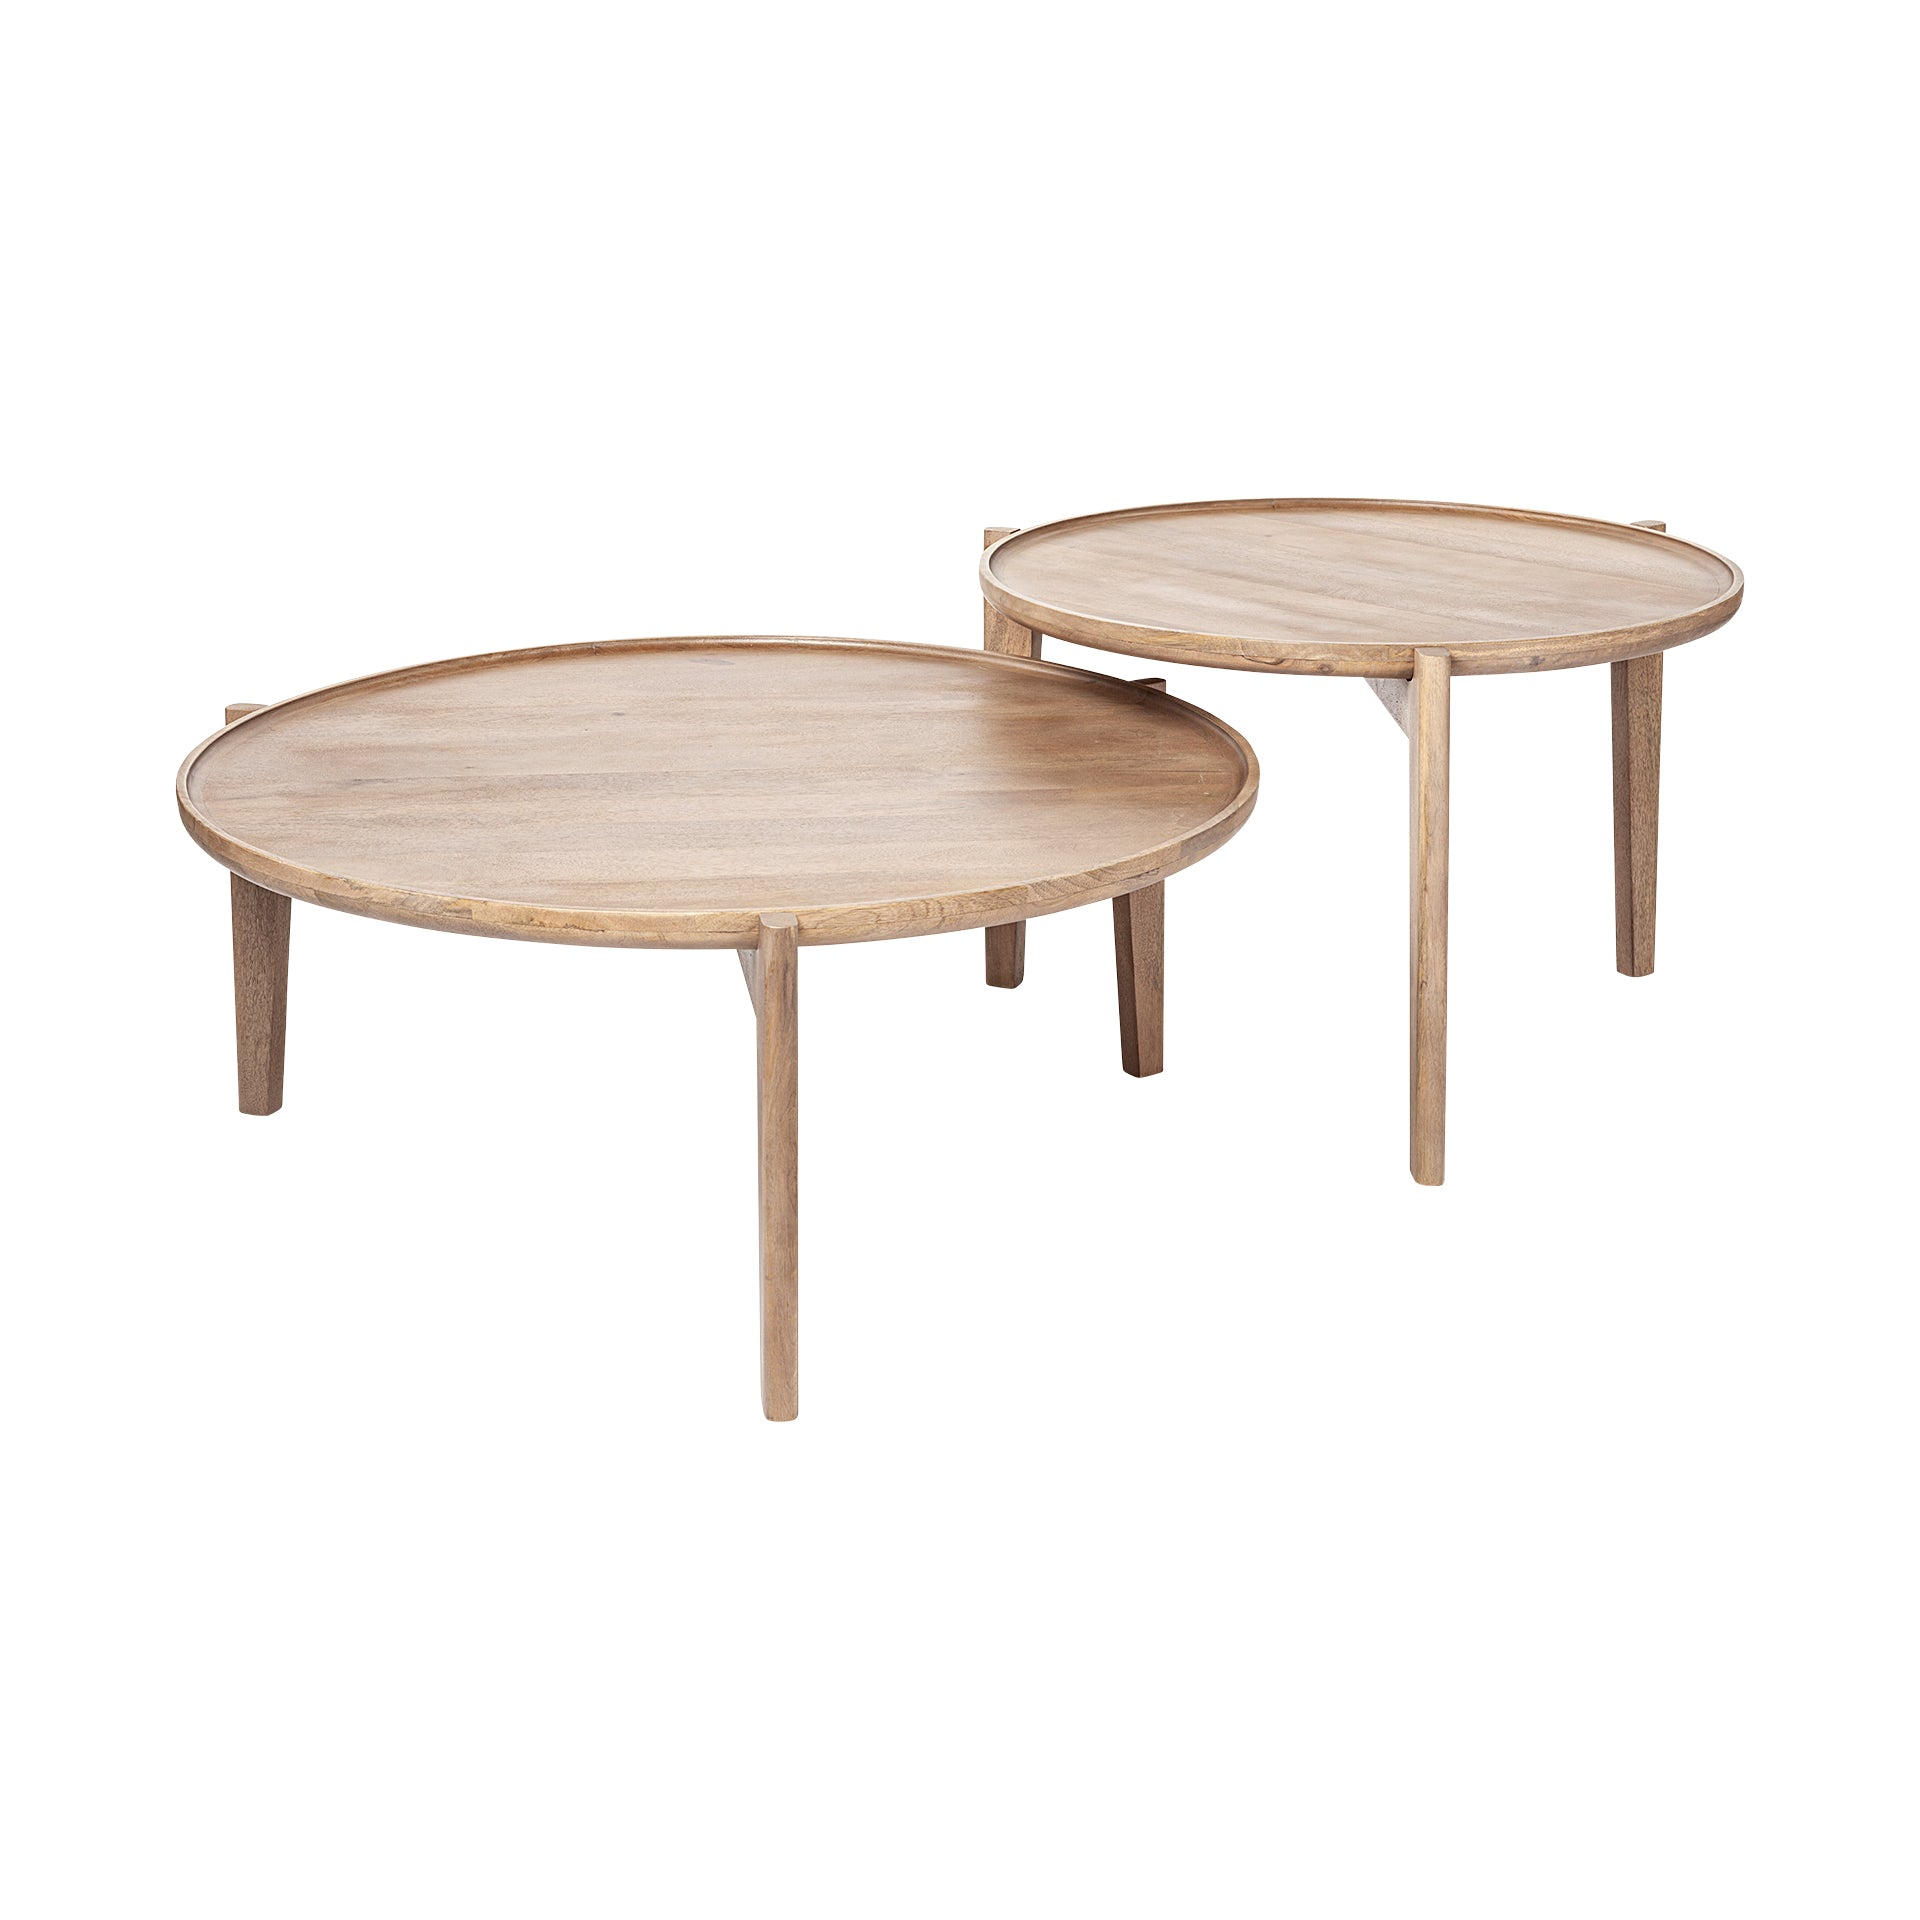 Reveal Round Mid Century Nesting Coffee Tables - Set of 2